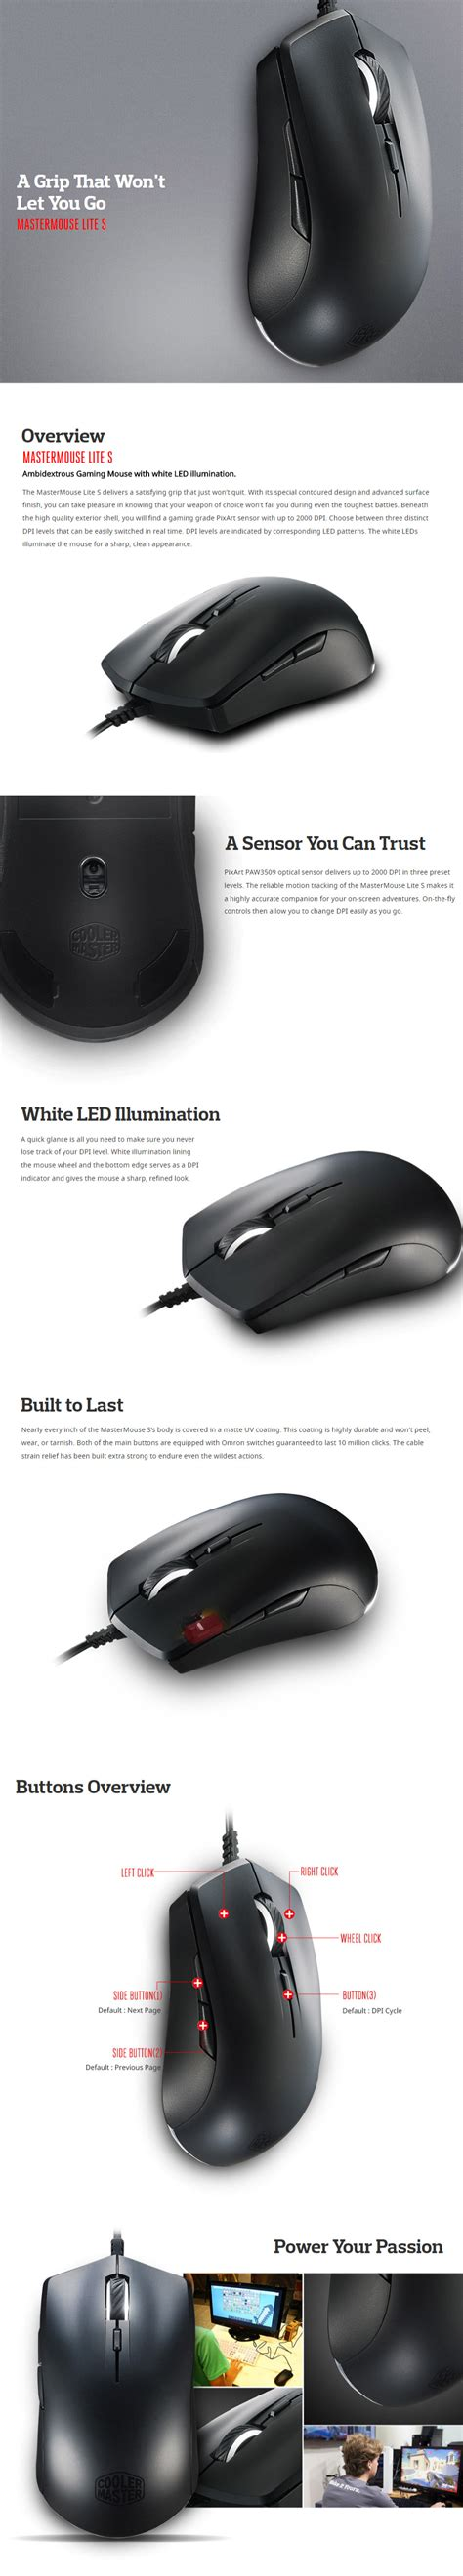 Cooler Master Gaming Mouse Mastermouse Lite S cooler master mastermouse lite s ambidextrous gaming mouse